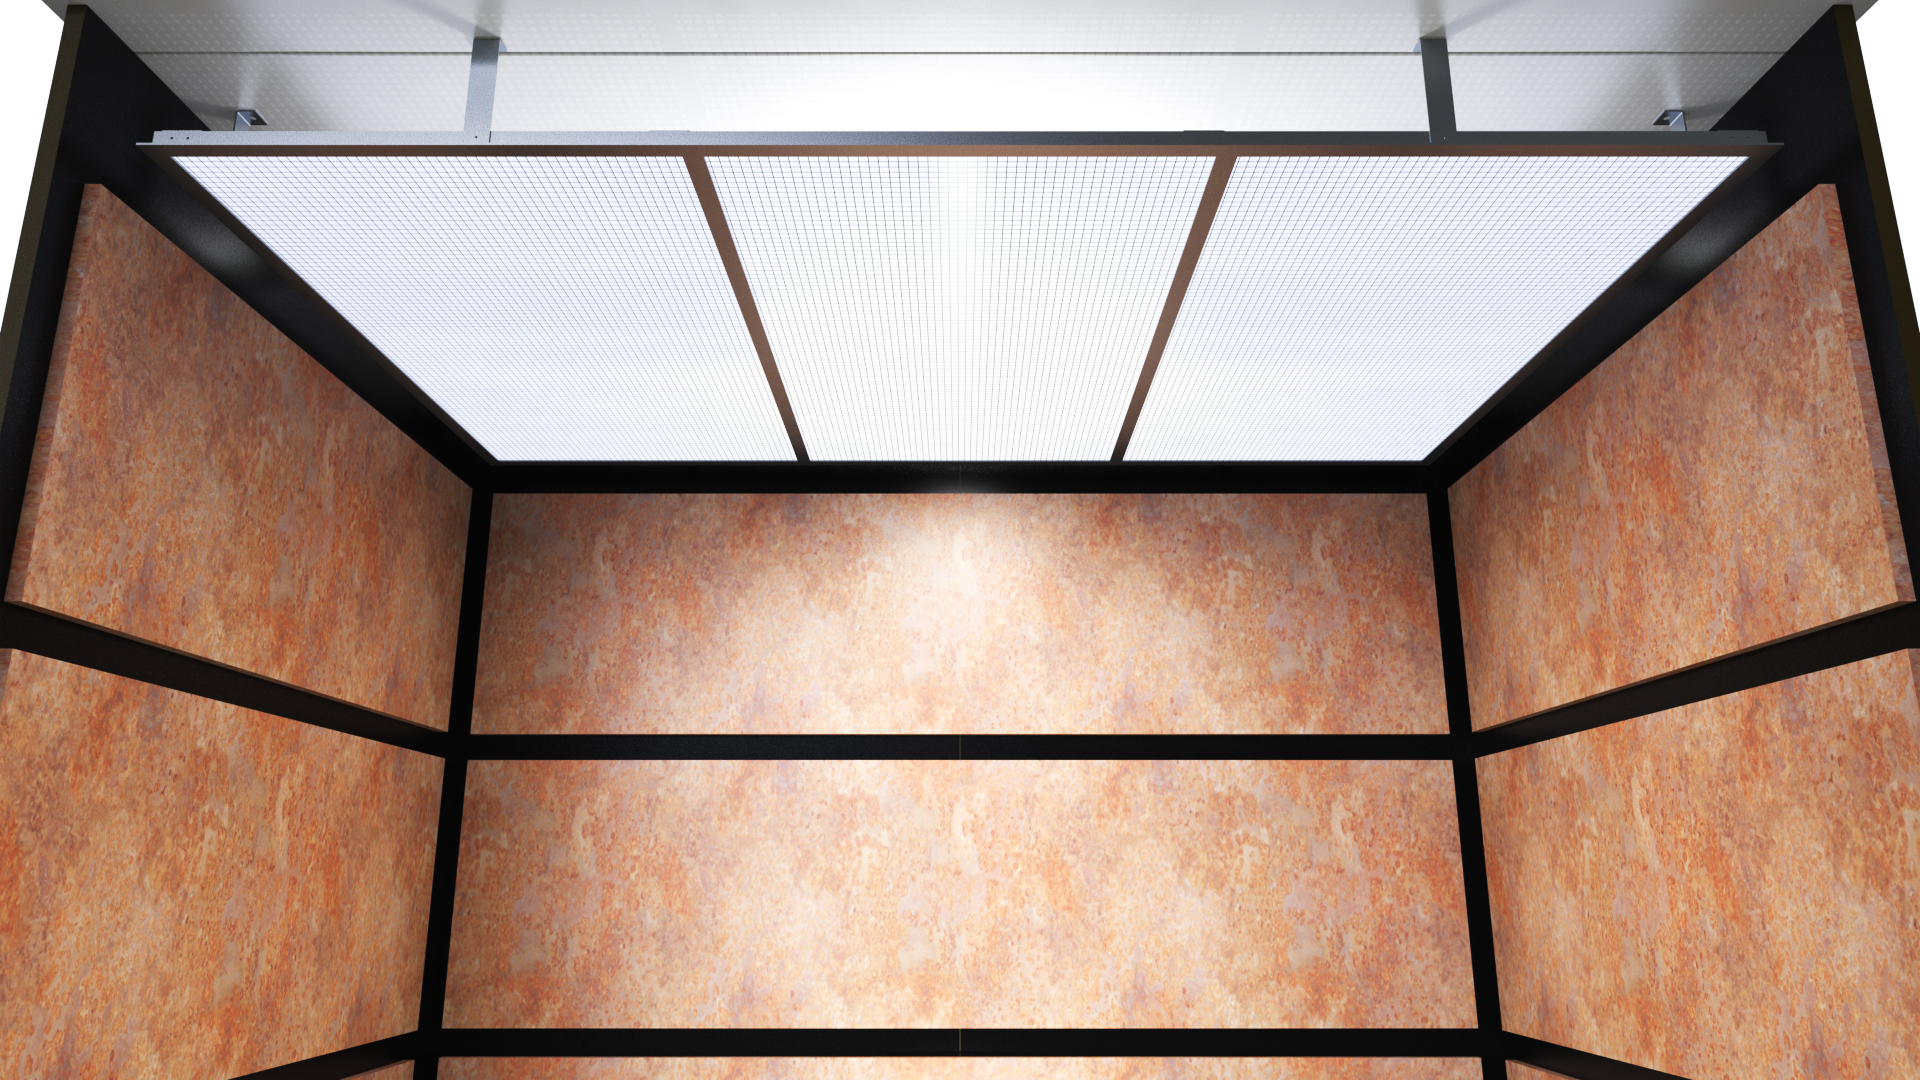 CE-1517 Ceiling View